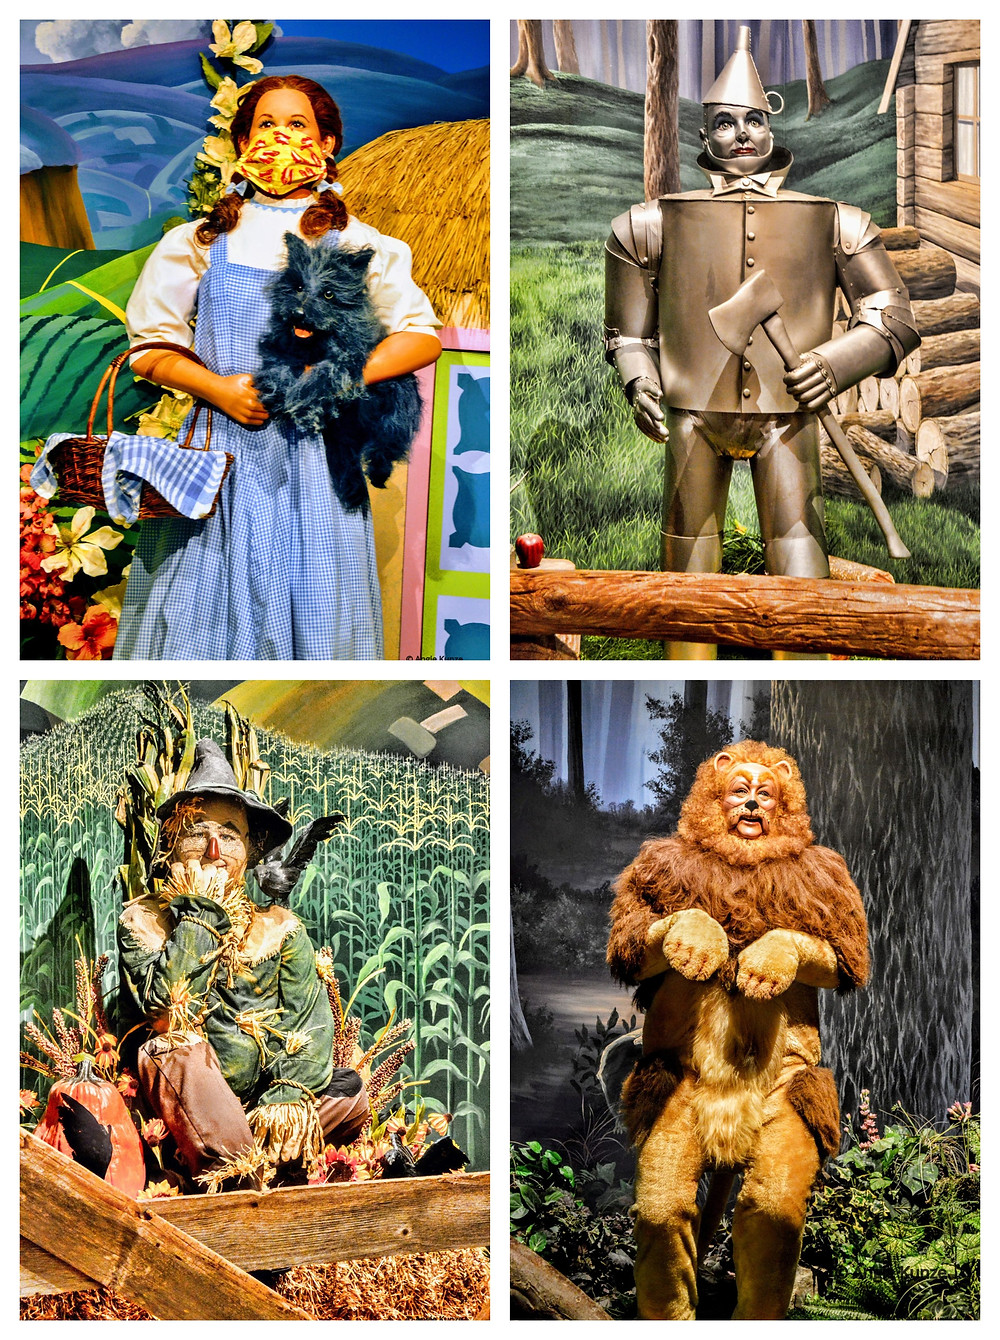 Wizard of Oz Characters at the Oz Museum in Wamego Kansas, Dorothy Gale, The Tin Man, The Scarecrow and the Cowardly Lion